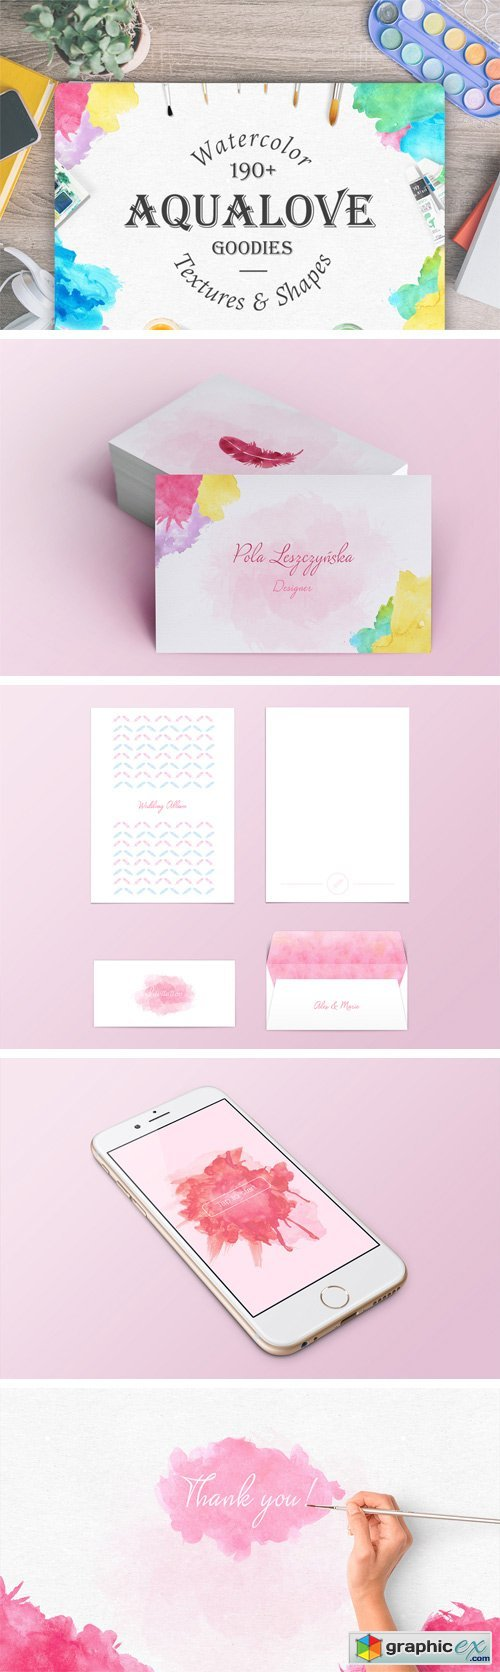 Aqualove Watercolor Goodies